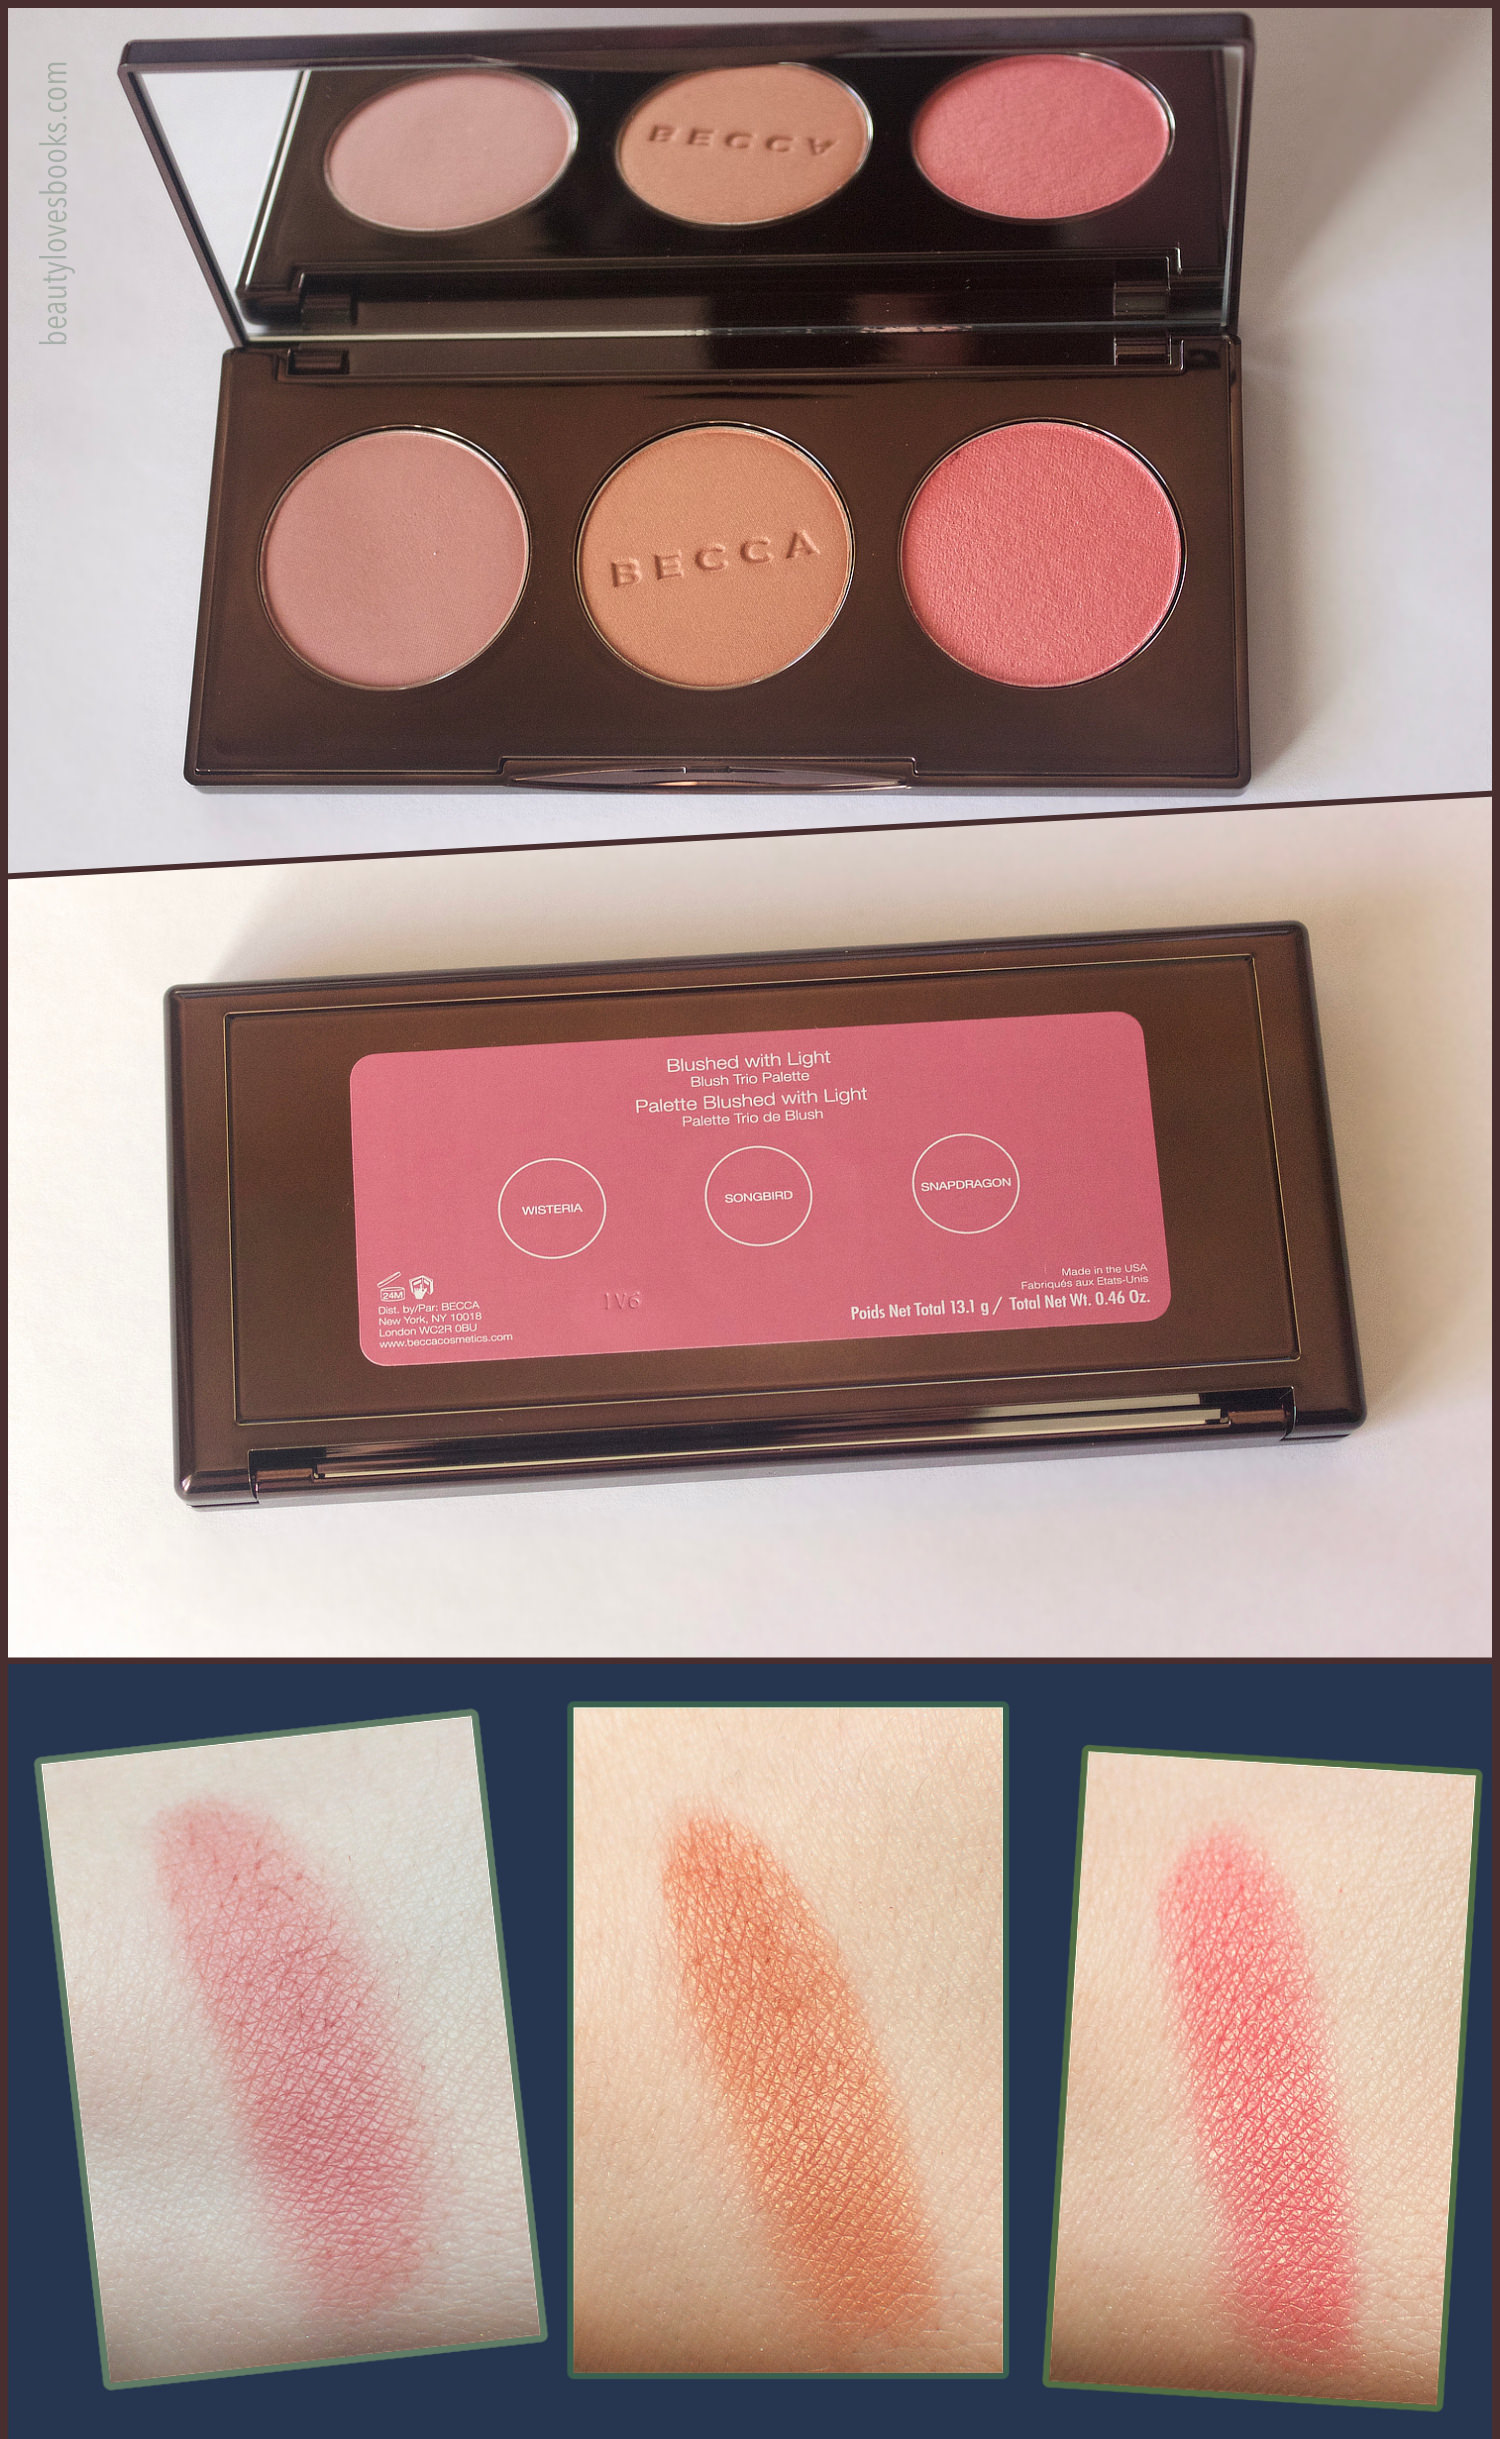 Becca Blushed with Light Palette (Blush Trio Palette) swatches